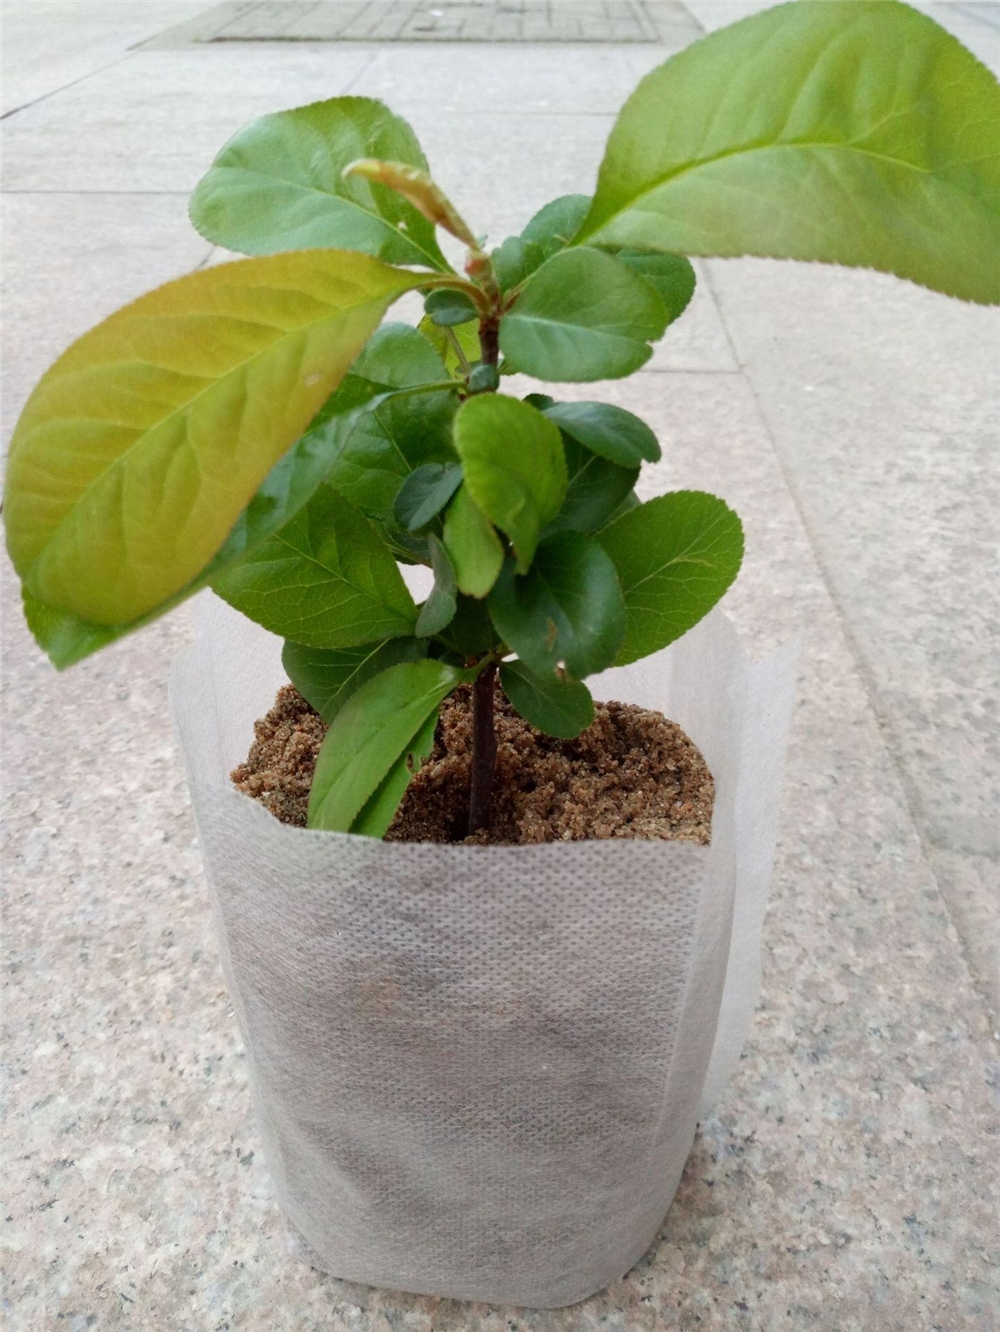 non woven fablic bags polypropylene seedling bag for gardenning